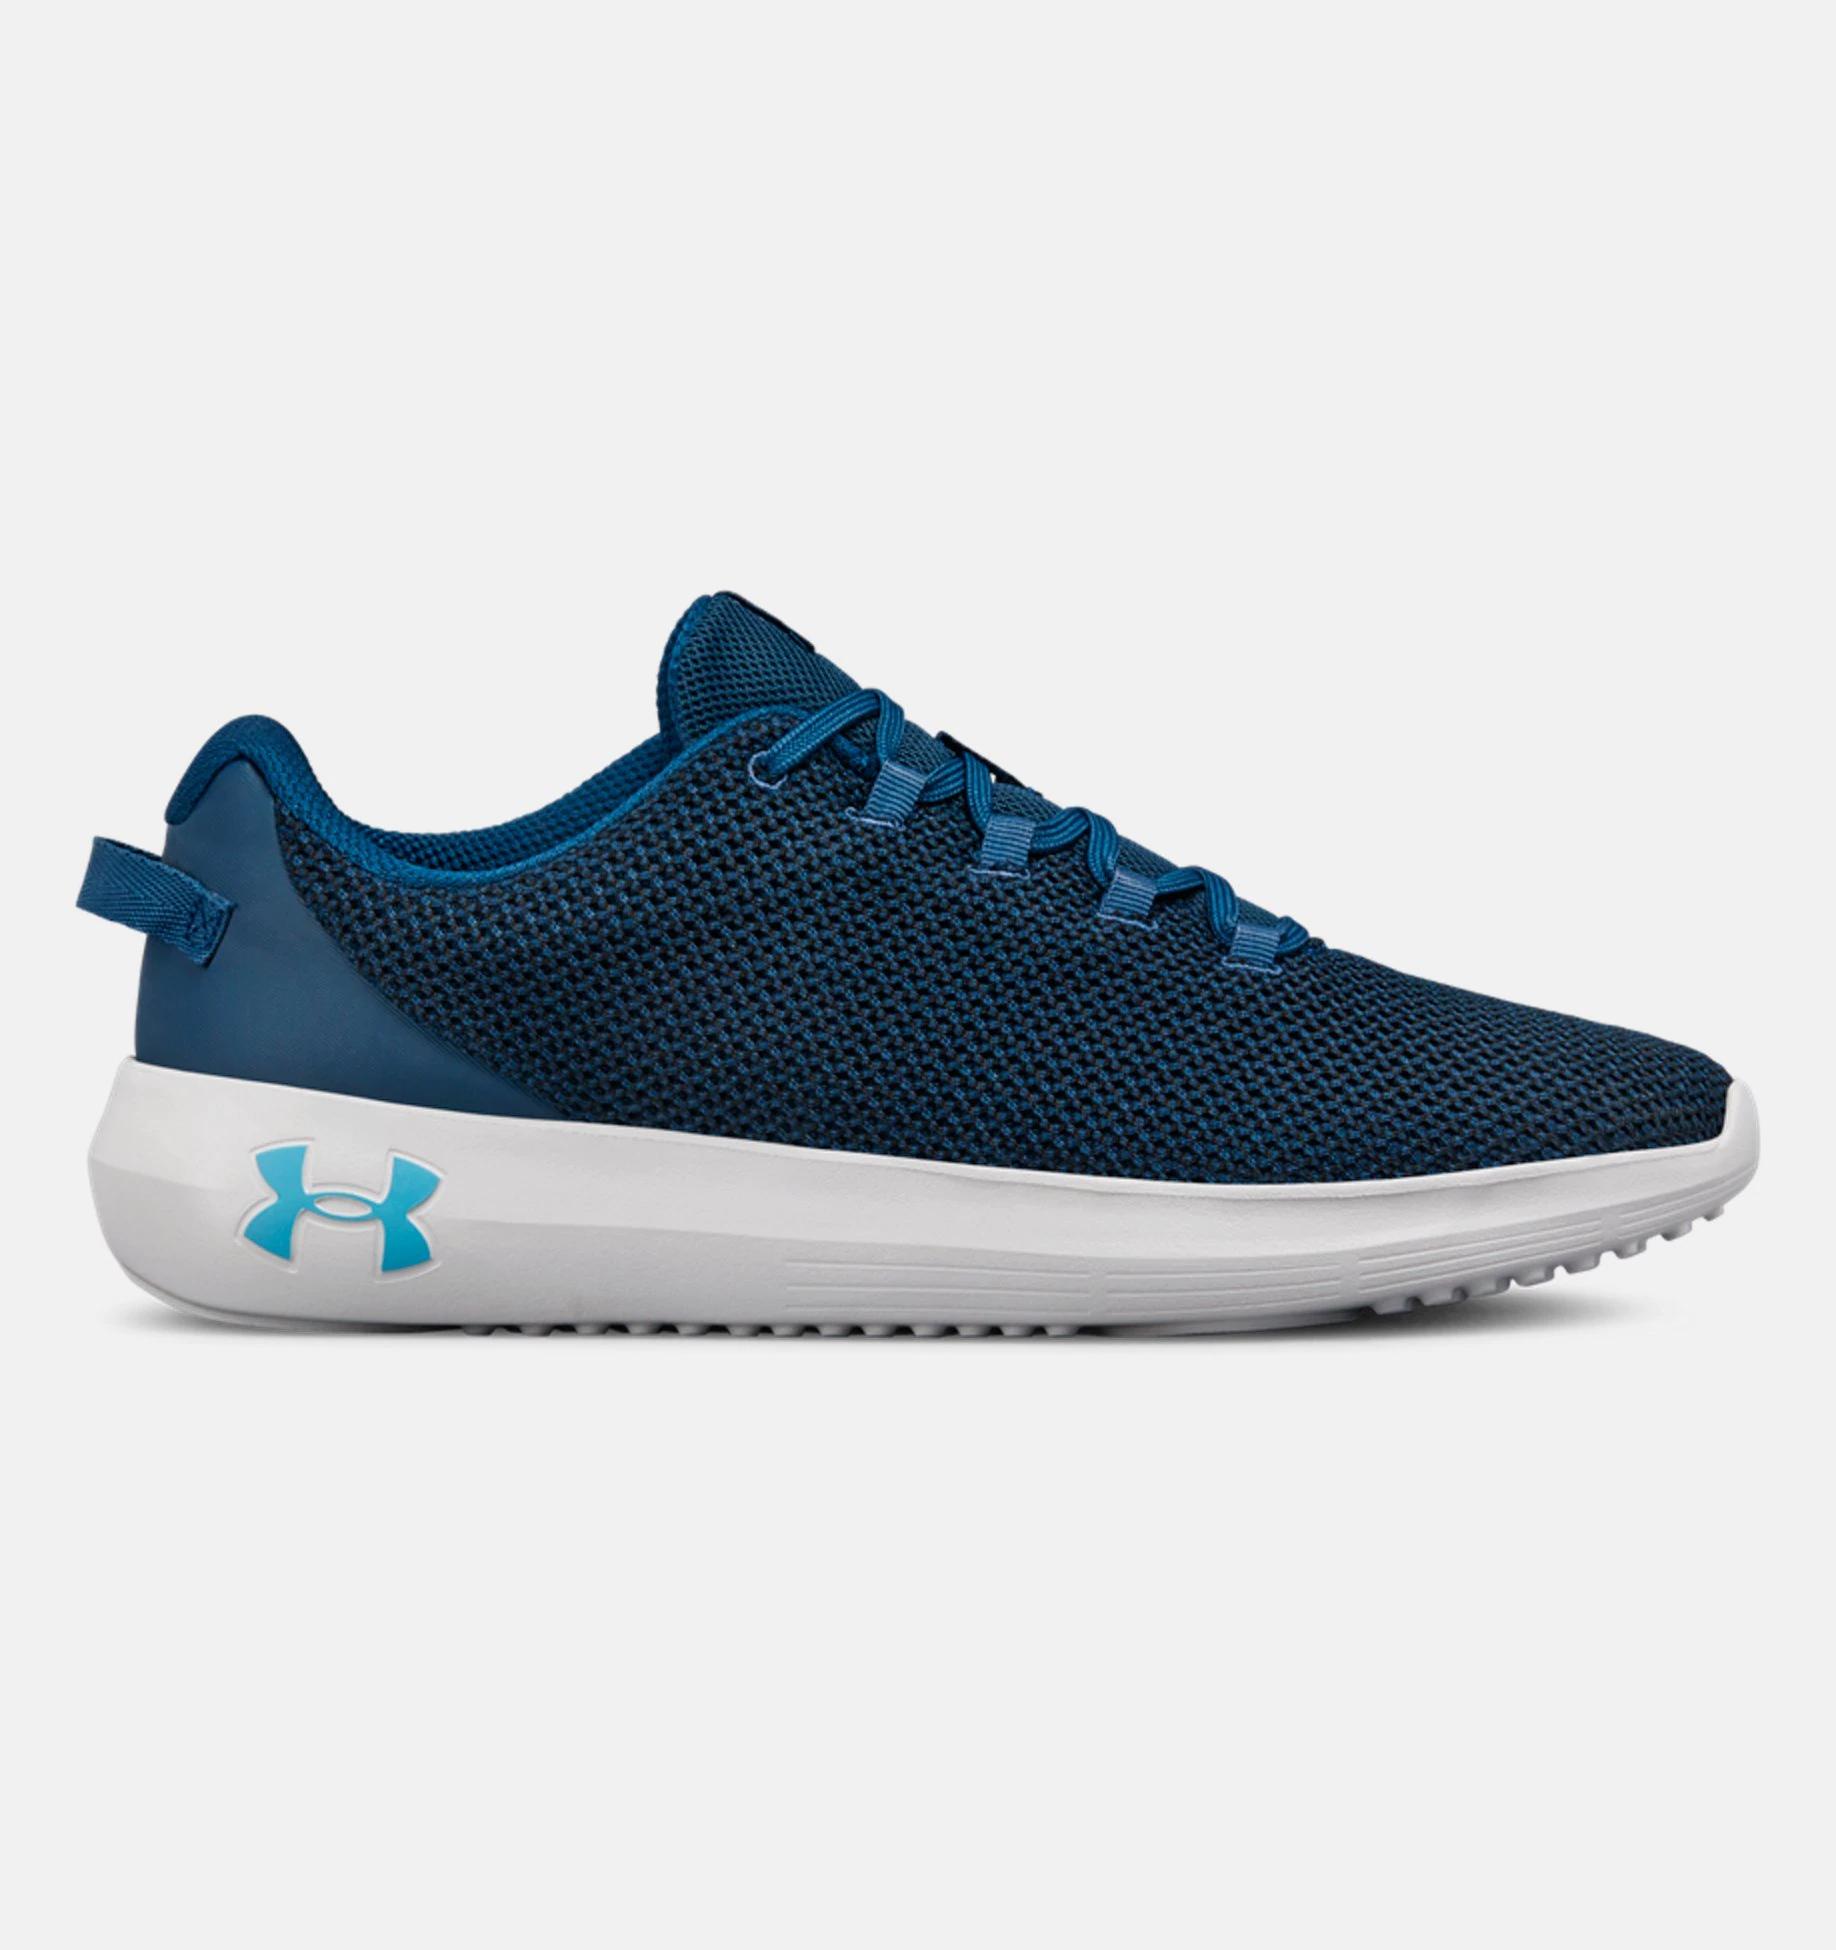 Under Armour Men's Ripple Shoes